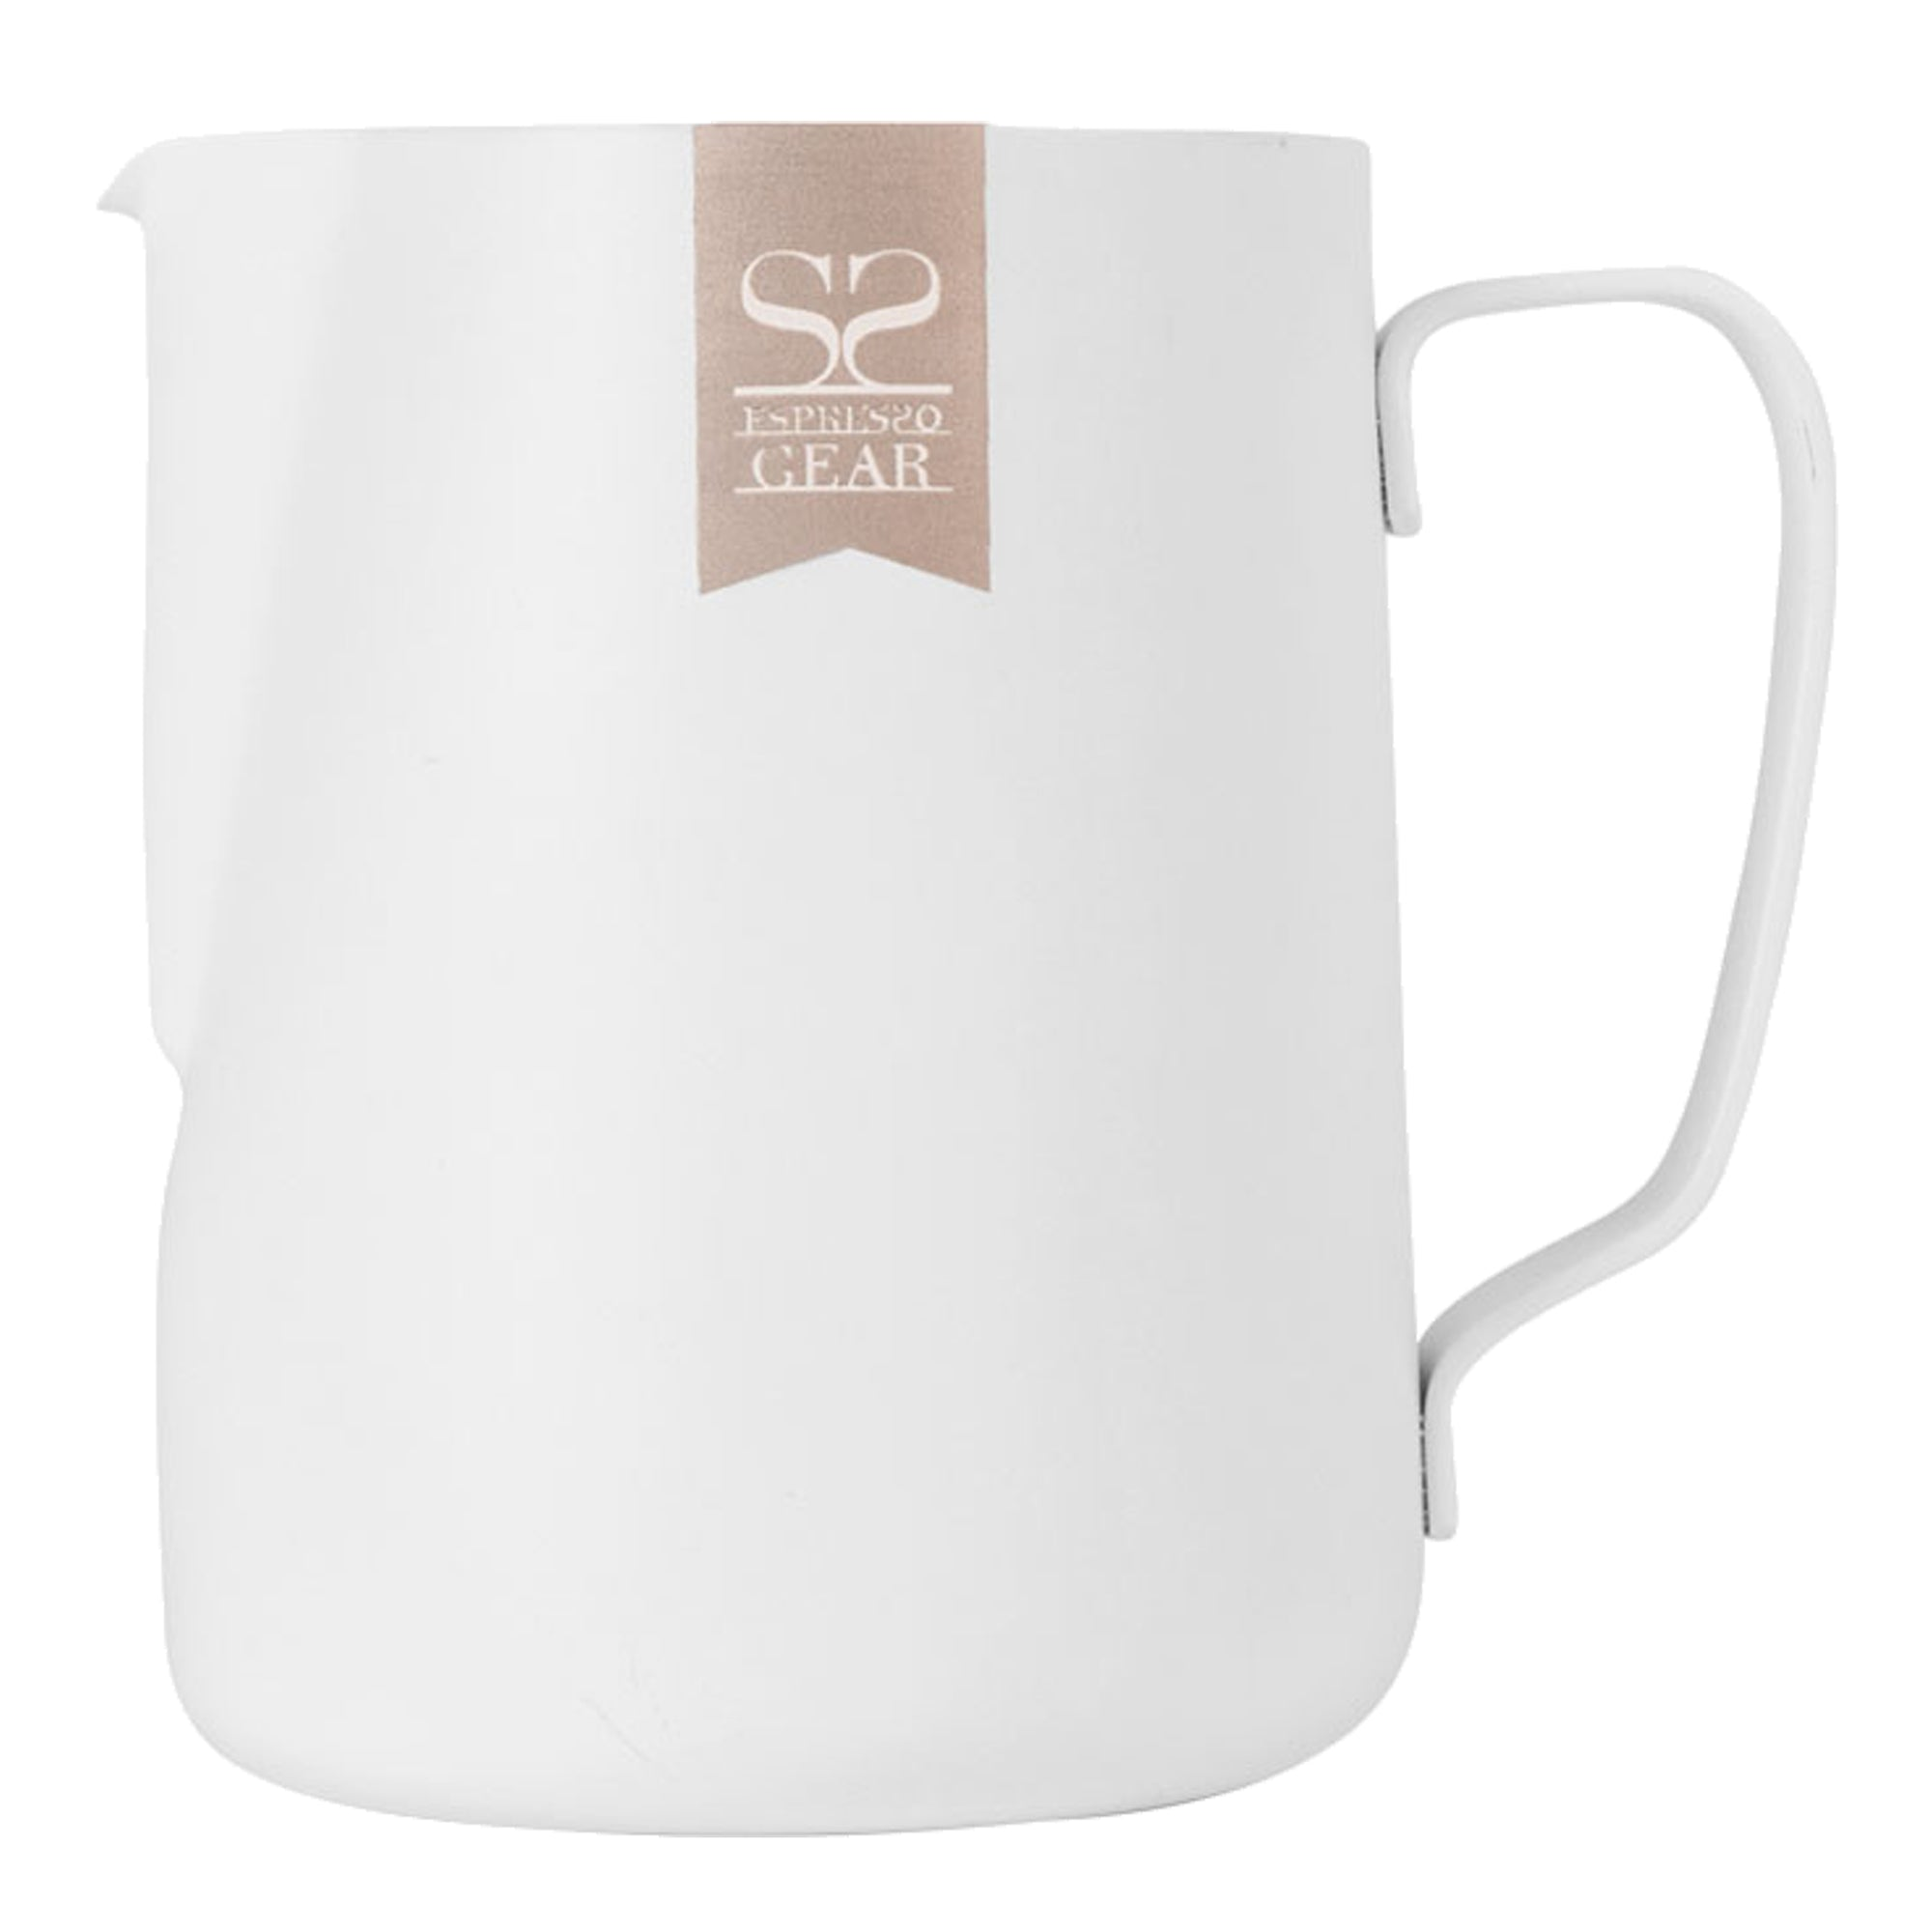 Pitcher White 350ml - Espresso Gear - Espresso Gear